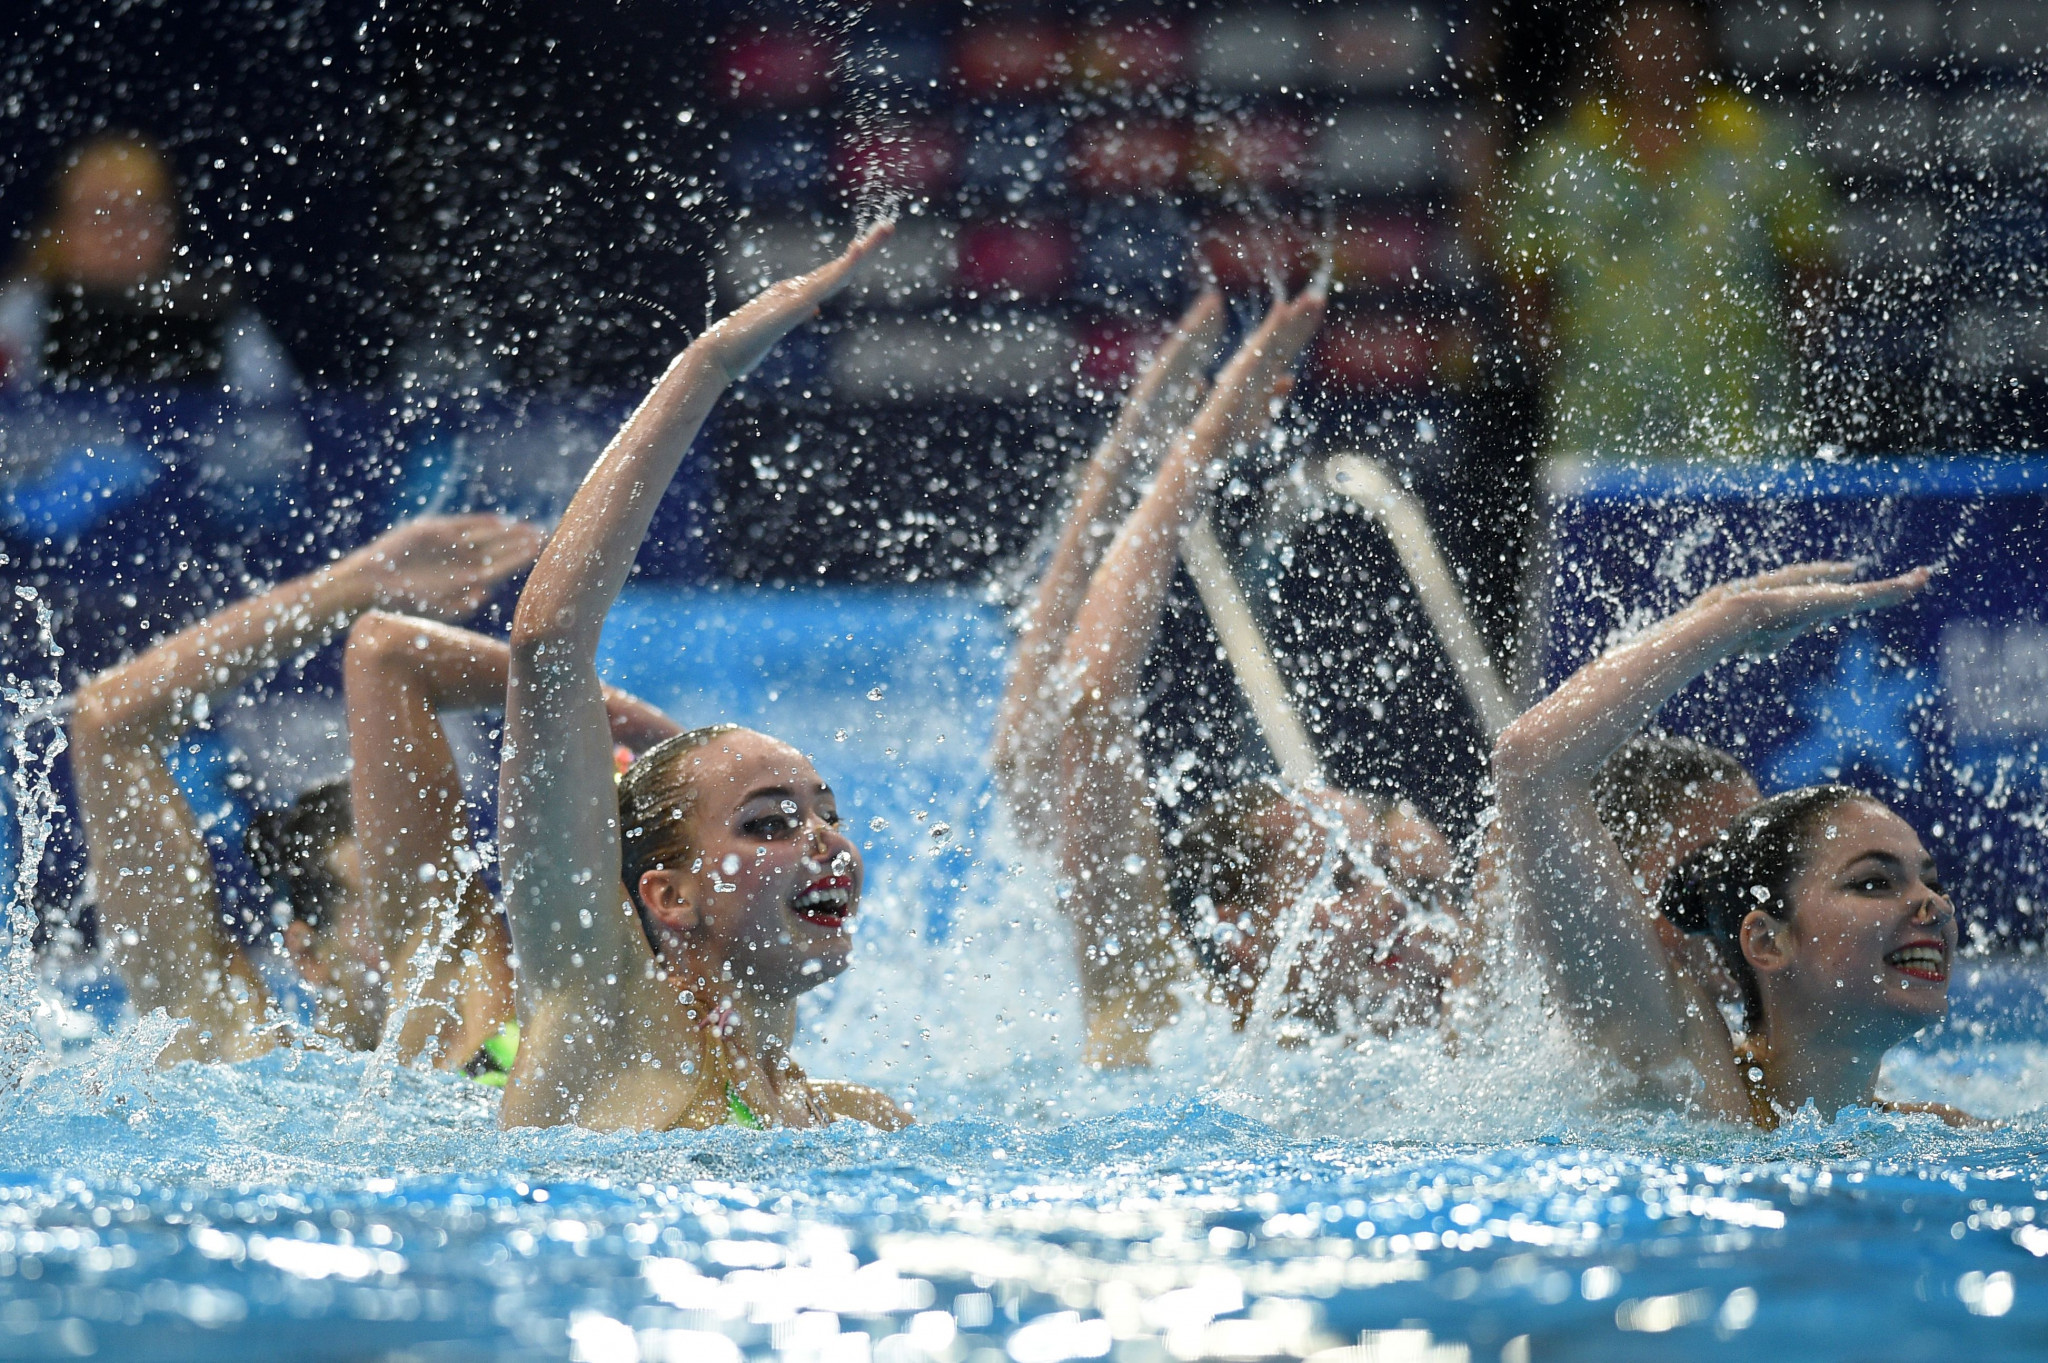 Ukraine will be hoping to finish the season with several golds at the International Swimming Federation Artistic Swimming World Series Super Final in Budapest, Hungary ©Getty Images